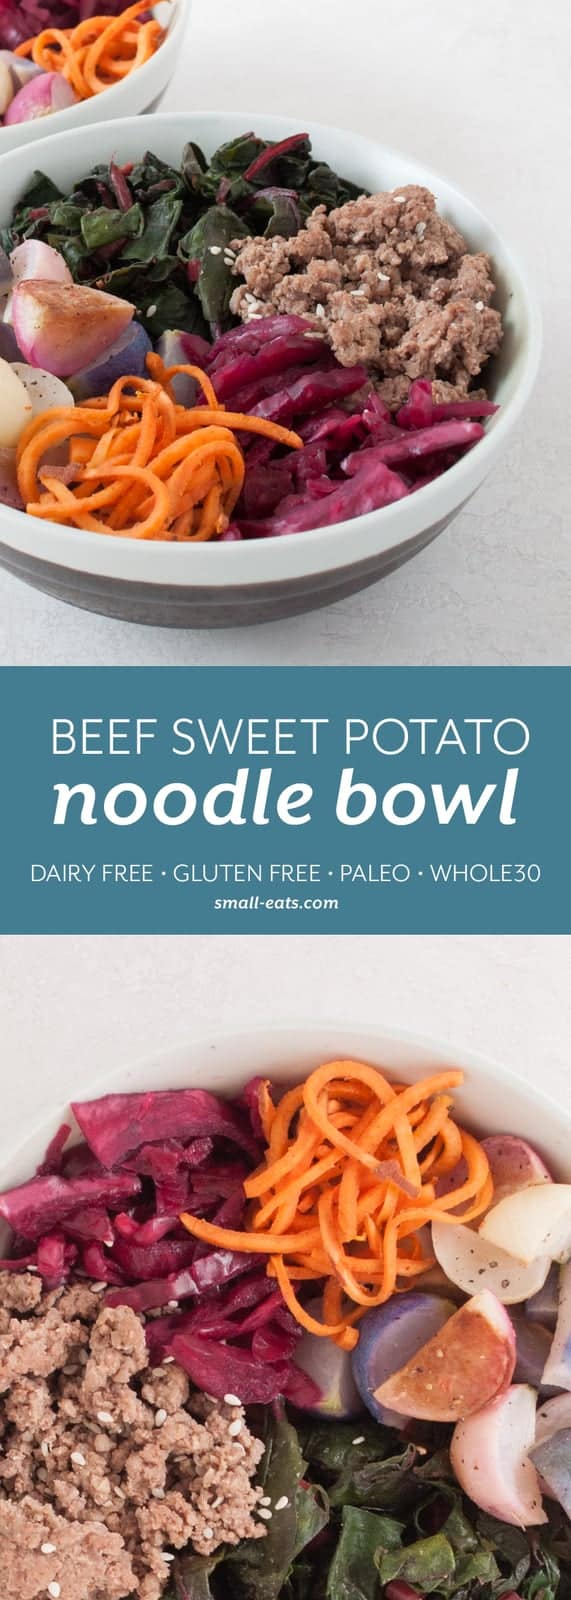 Enjoy a gluten and grain free sweet potato bowl with ground beef, roasted radishes, Swiss chard and sauerkraut. | Beef Sweet Potato Noodle Bowls from small-eats.com